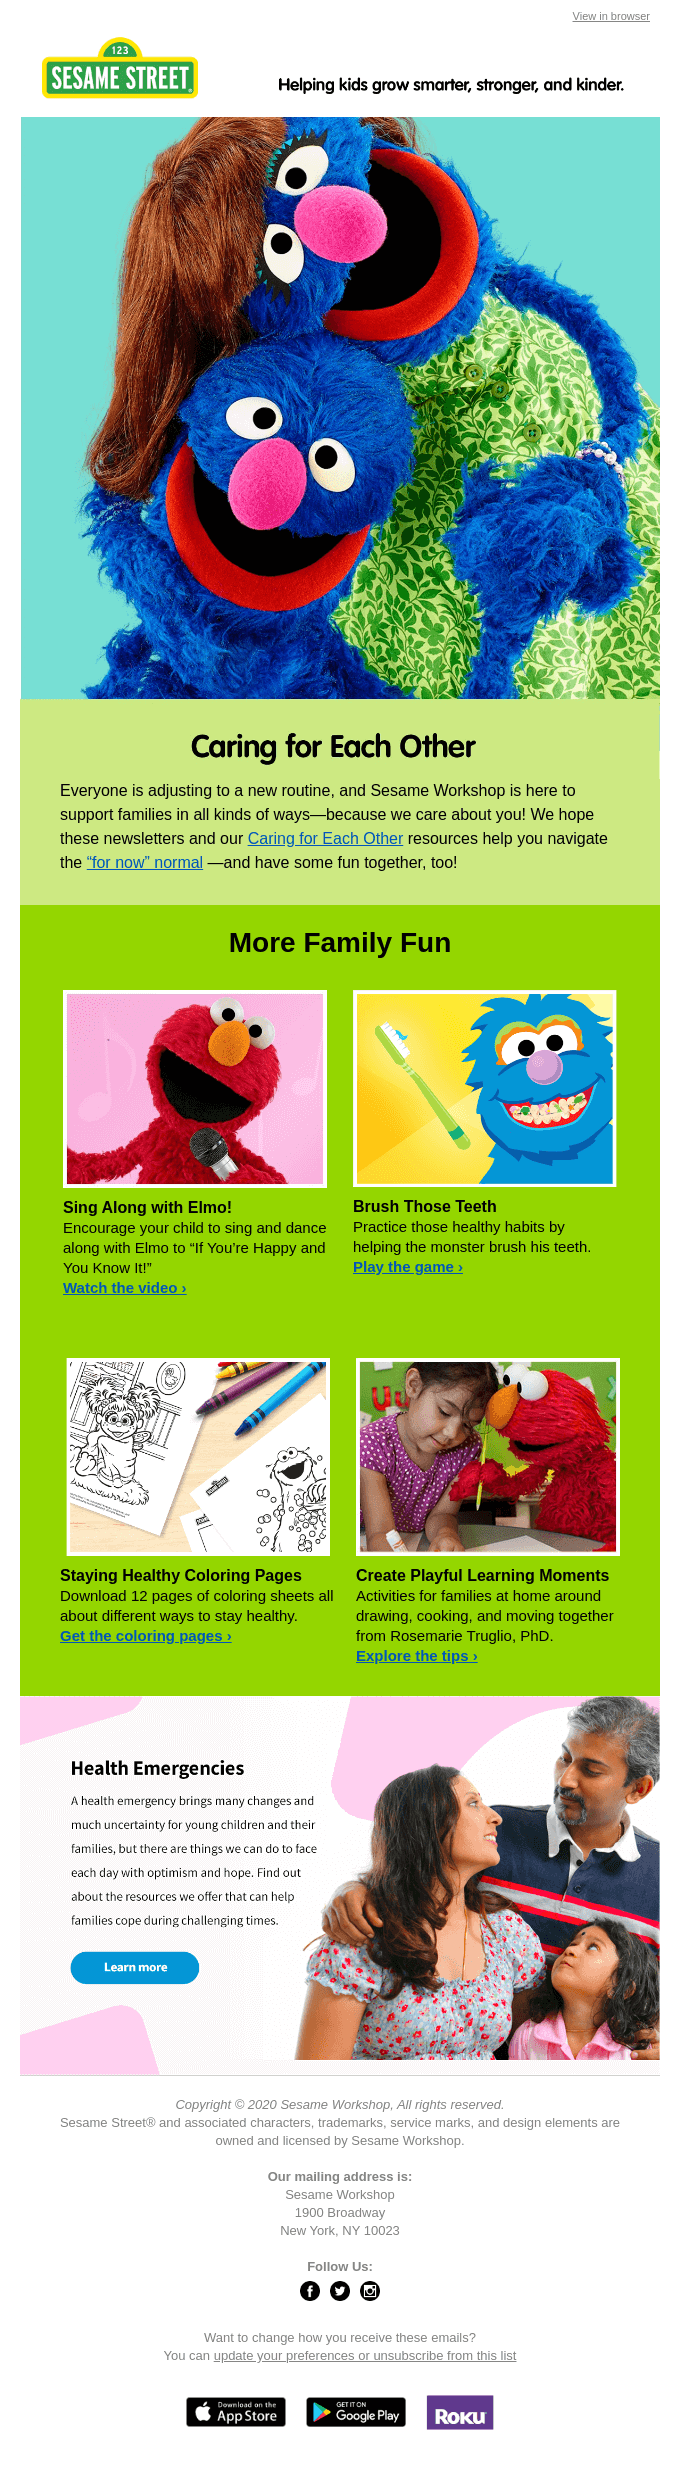 More Ways to Play and Learn with Sesame Street!